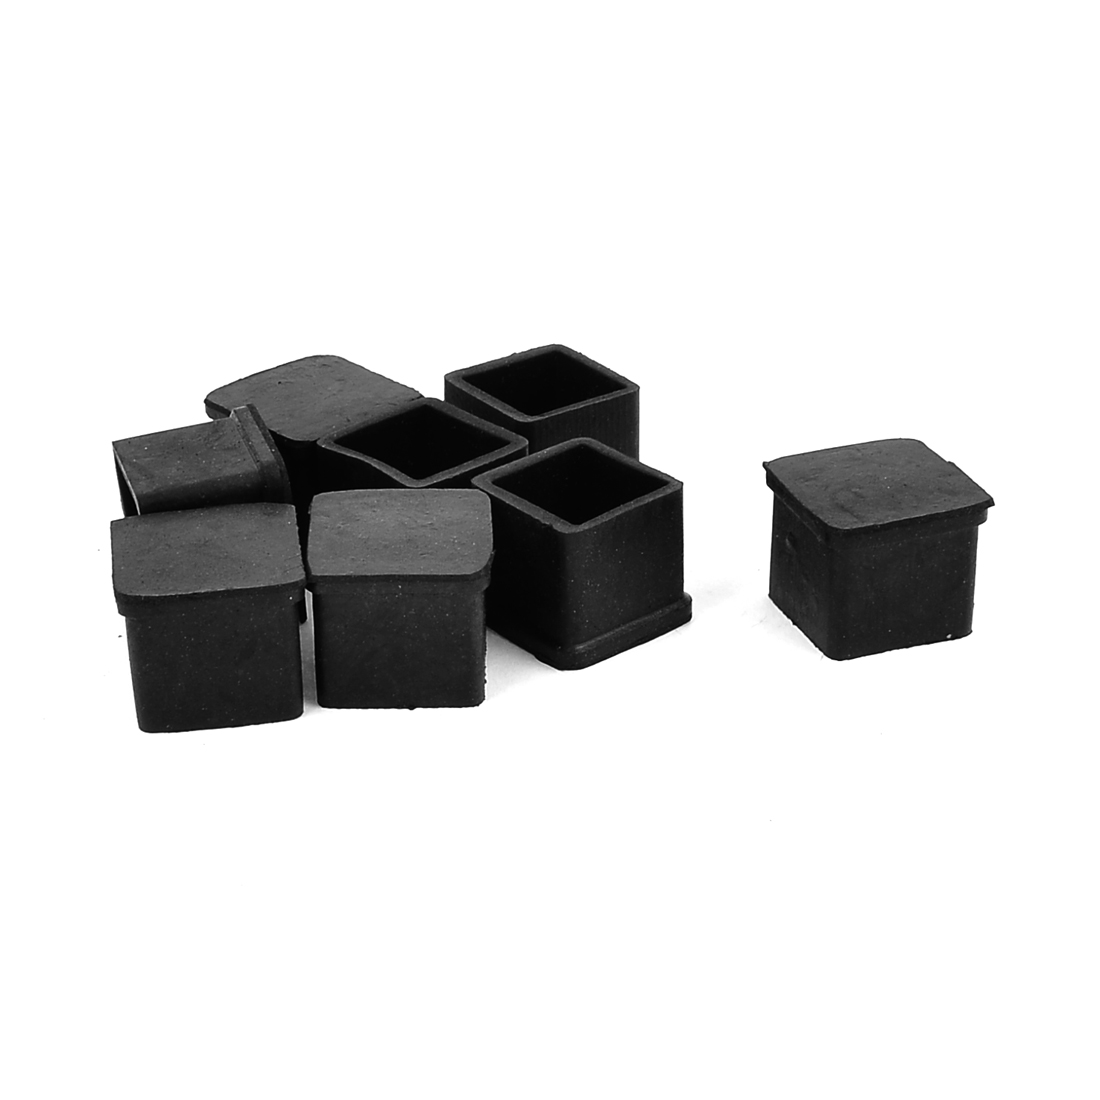 8 Pcs Square Rubber Furniture Table Foot Leg Cover Pad Floor Protector 20mm x 20mm